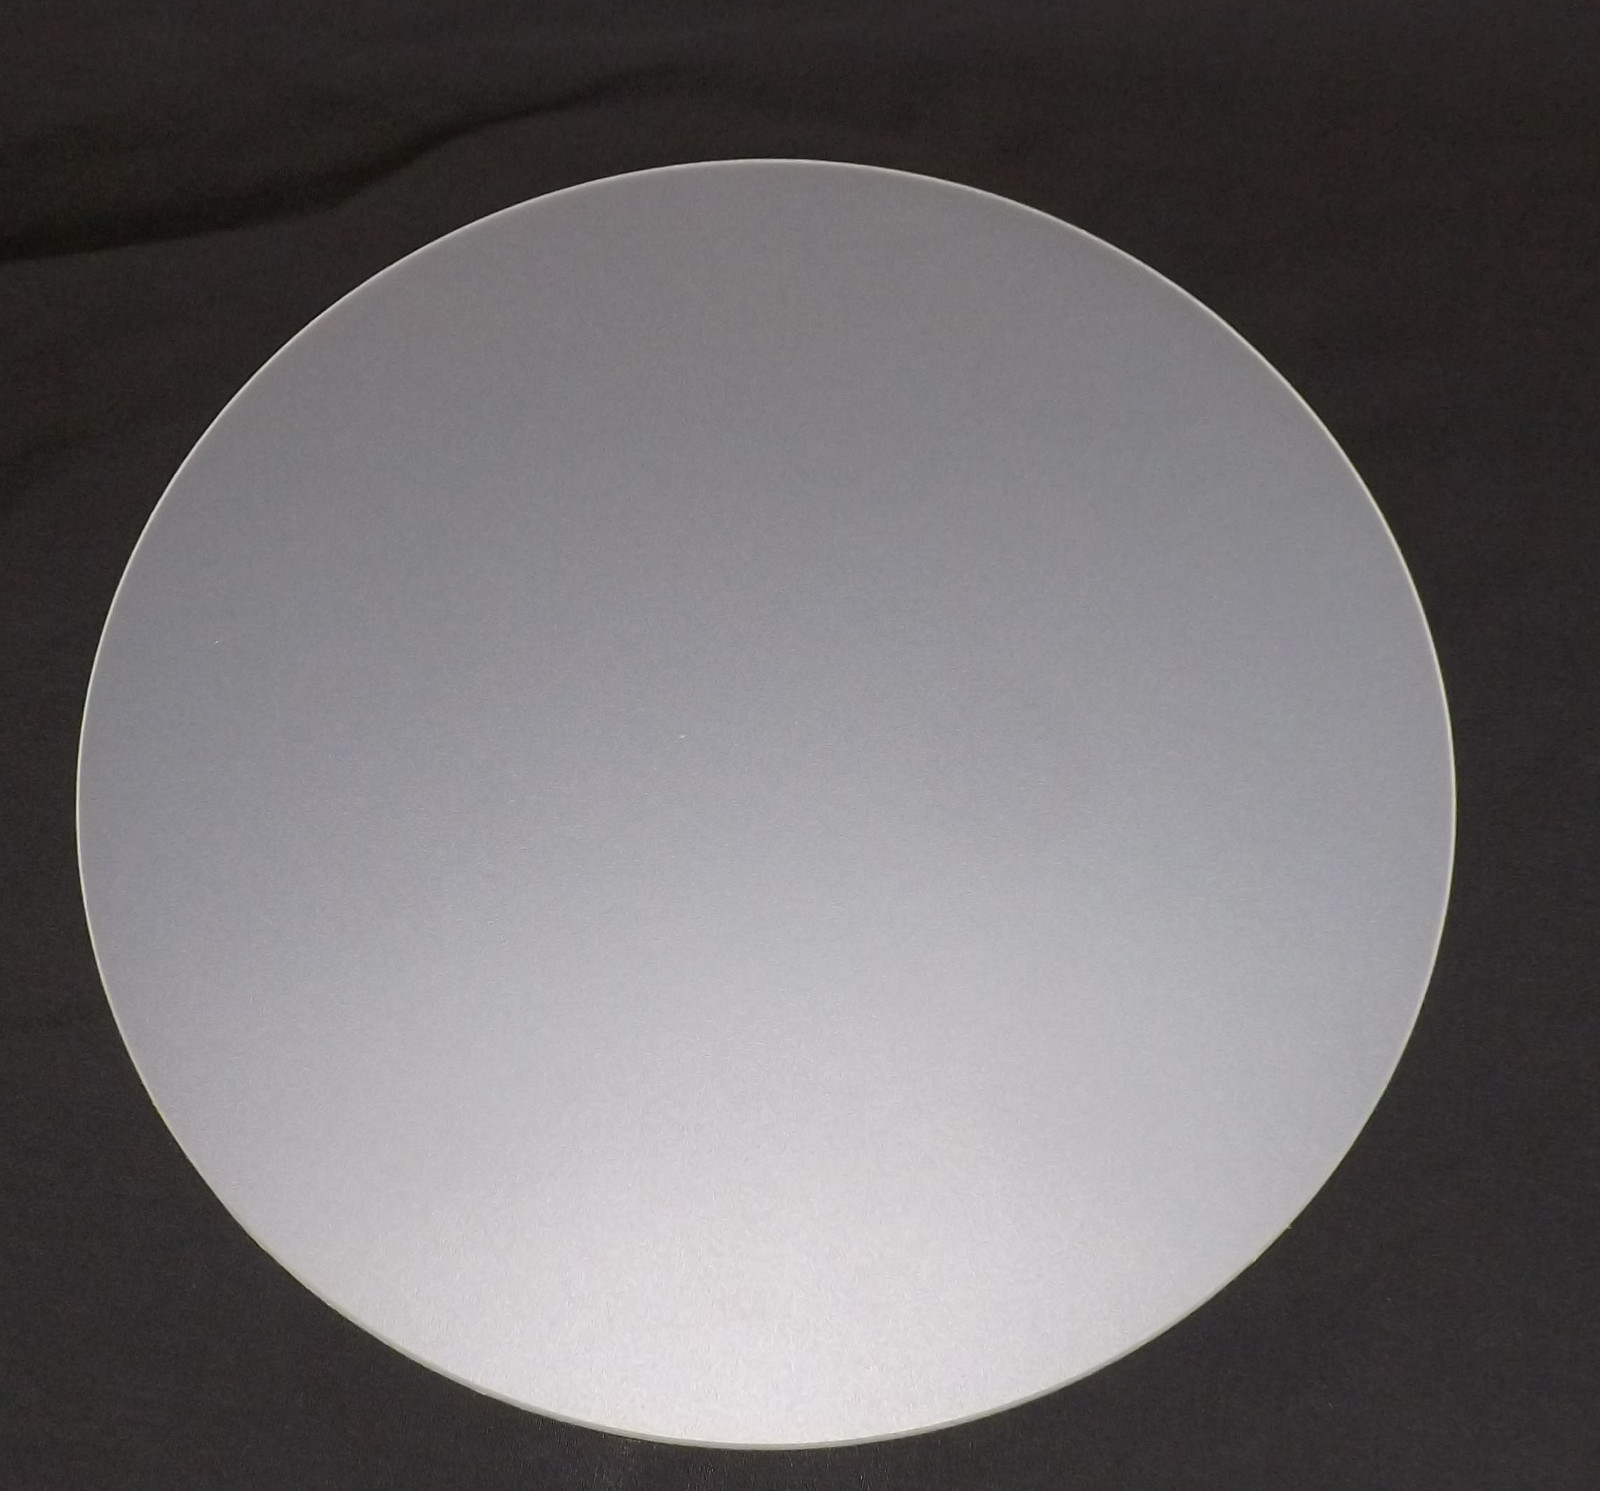 Lampshade Diffuser Ceiling Light / Pendant (various Sizes) #5C5A50